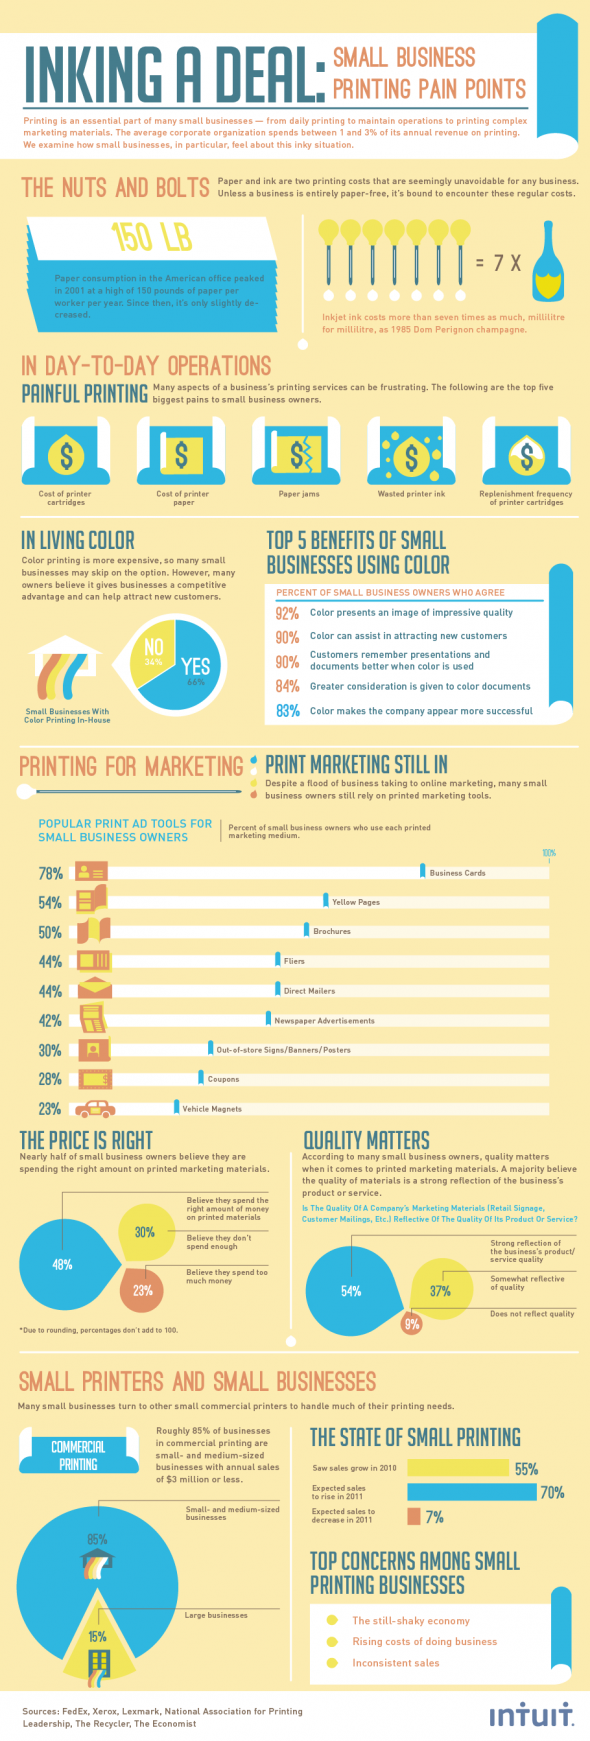 Small Business Printing Costs-Infographic